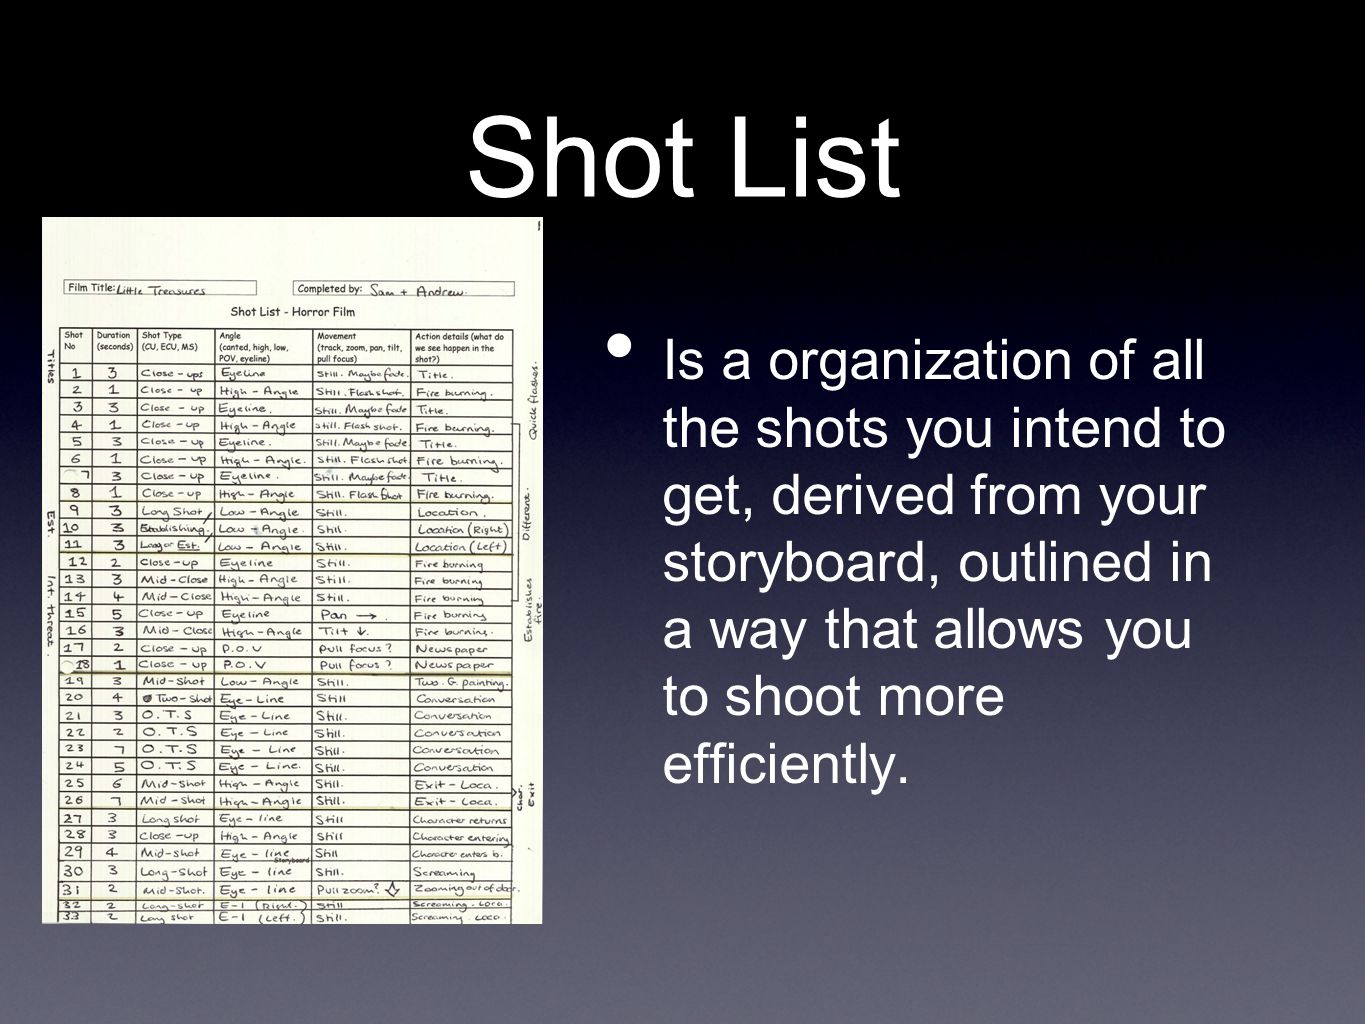 Shot List Is a organization of all the shots you intend to get, derived from your storyboard, outlined in a way that allows you to shoot more efficiently.